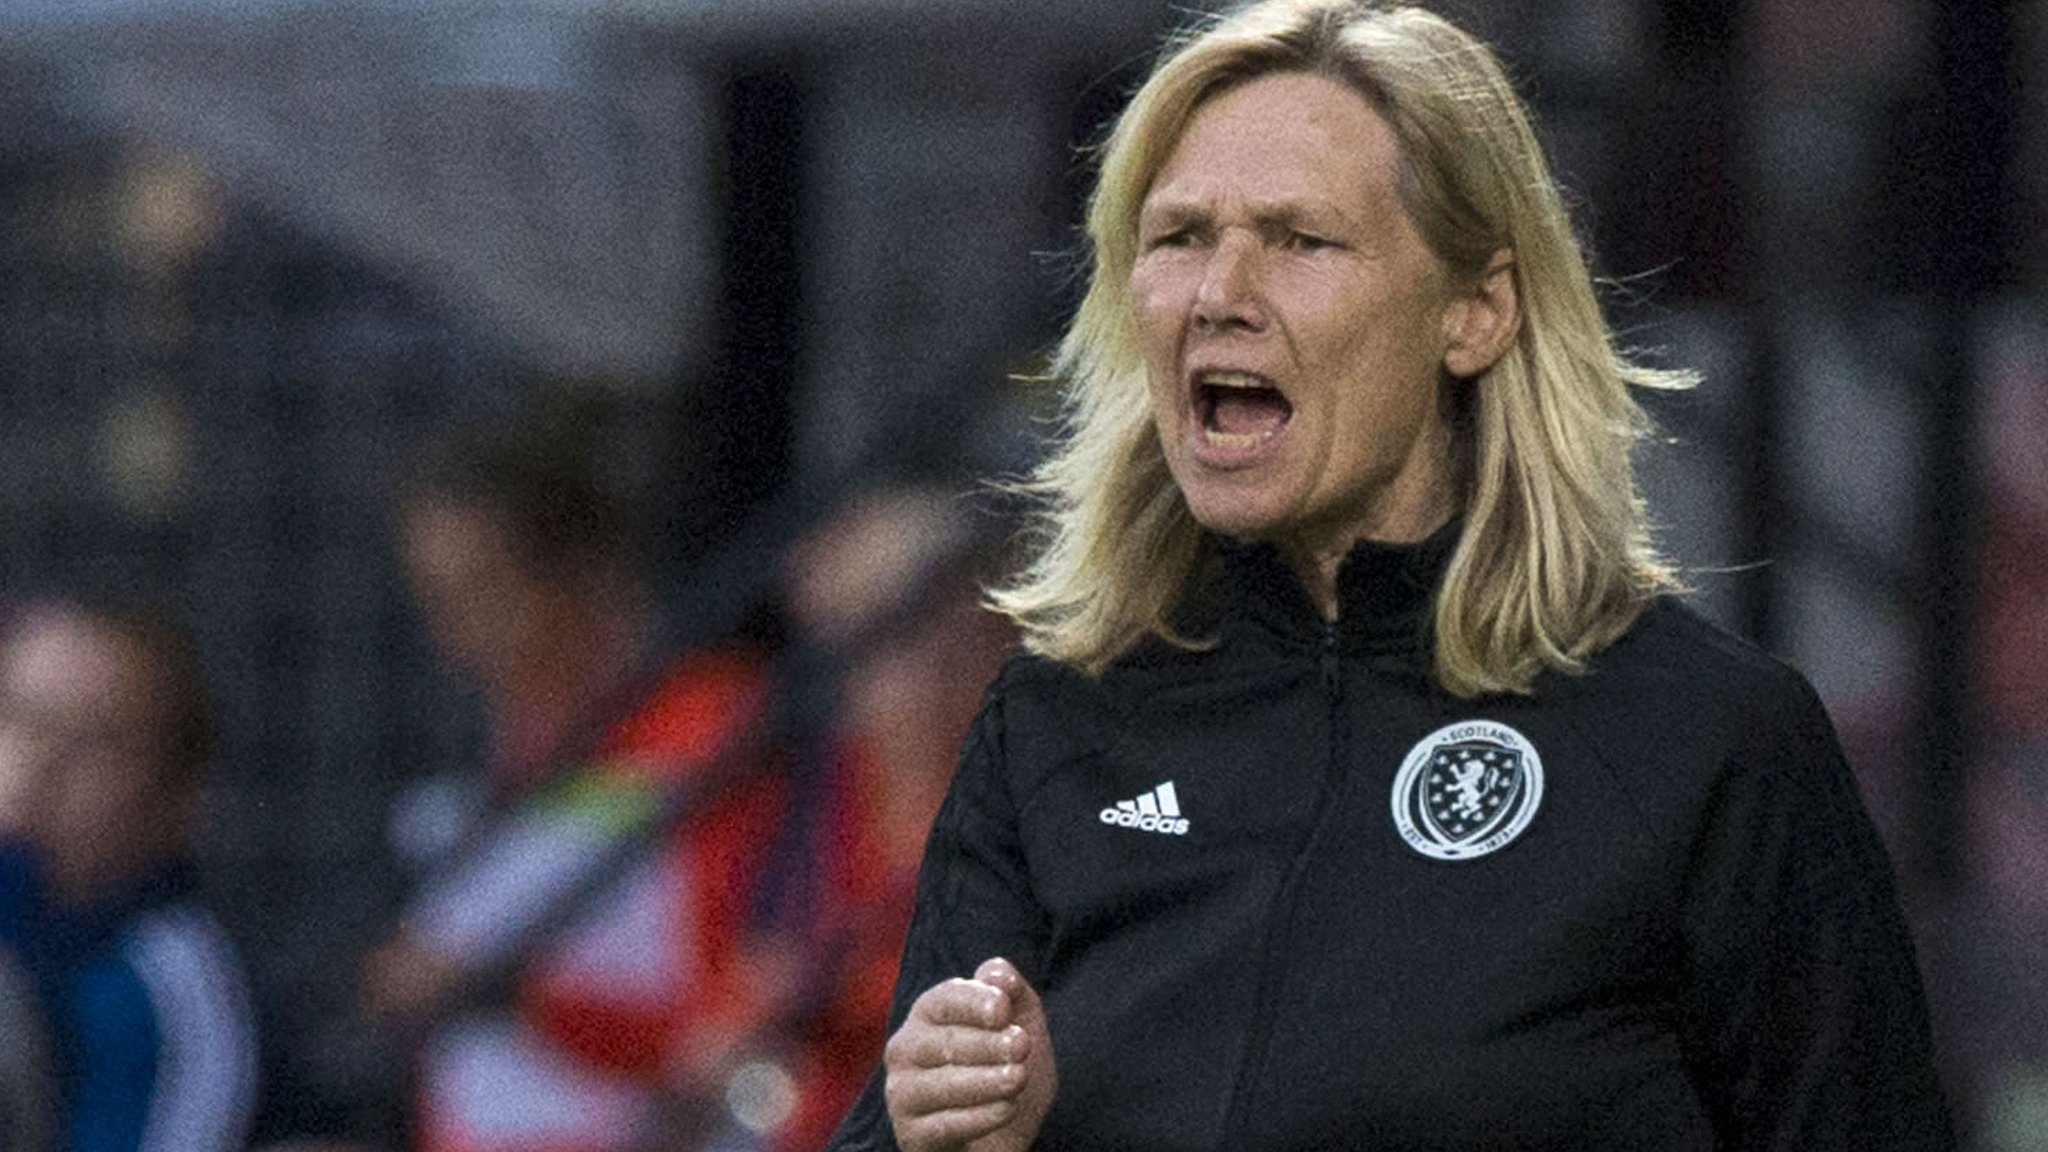 Women's Euro 2021 qualifiers: Scotland face former coach Anna Signeul's Finland